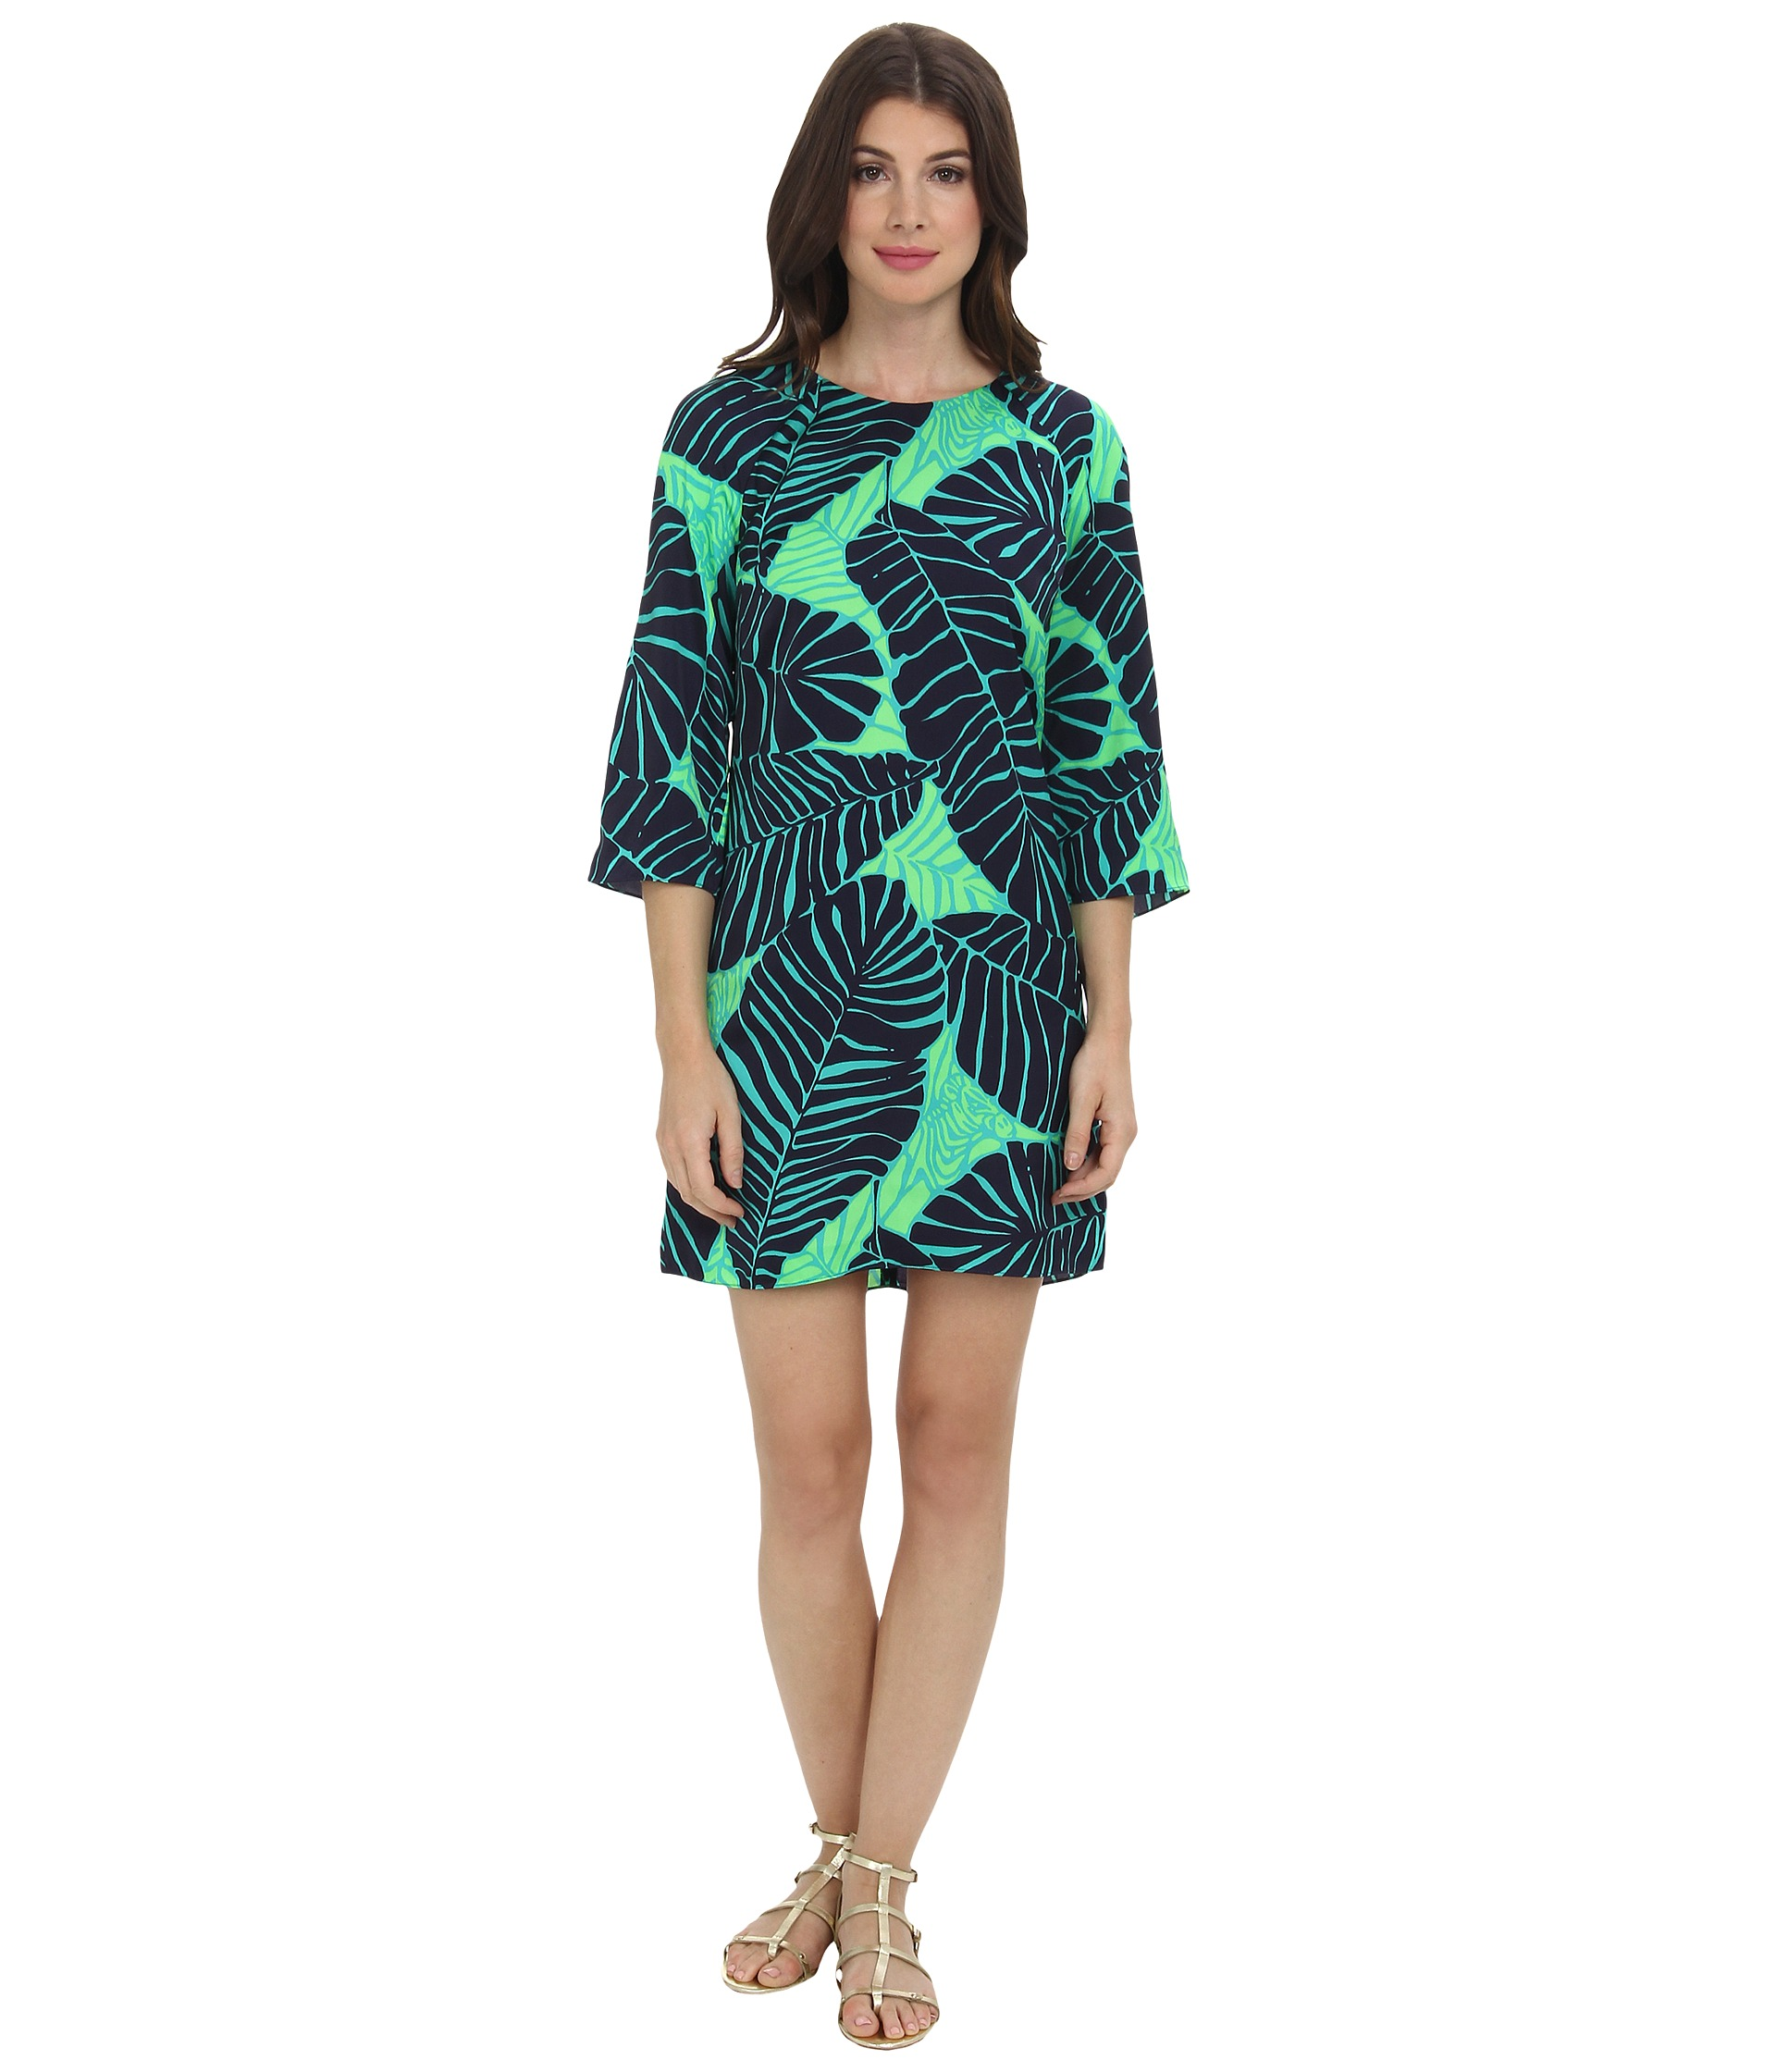 Lilly Pulitzer Knock Off Dresses For Women Lilly Pulitzer Carol Shift